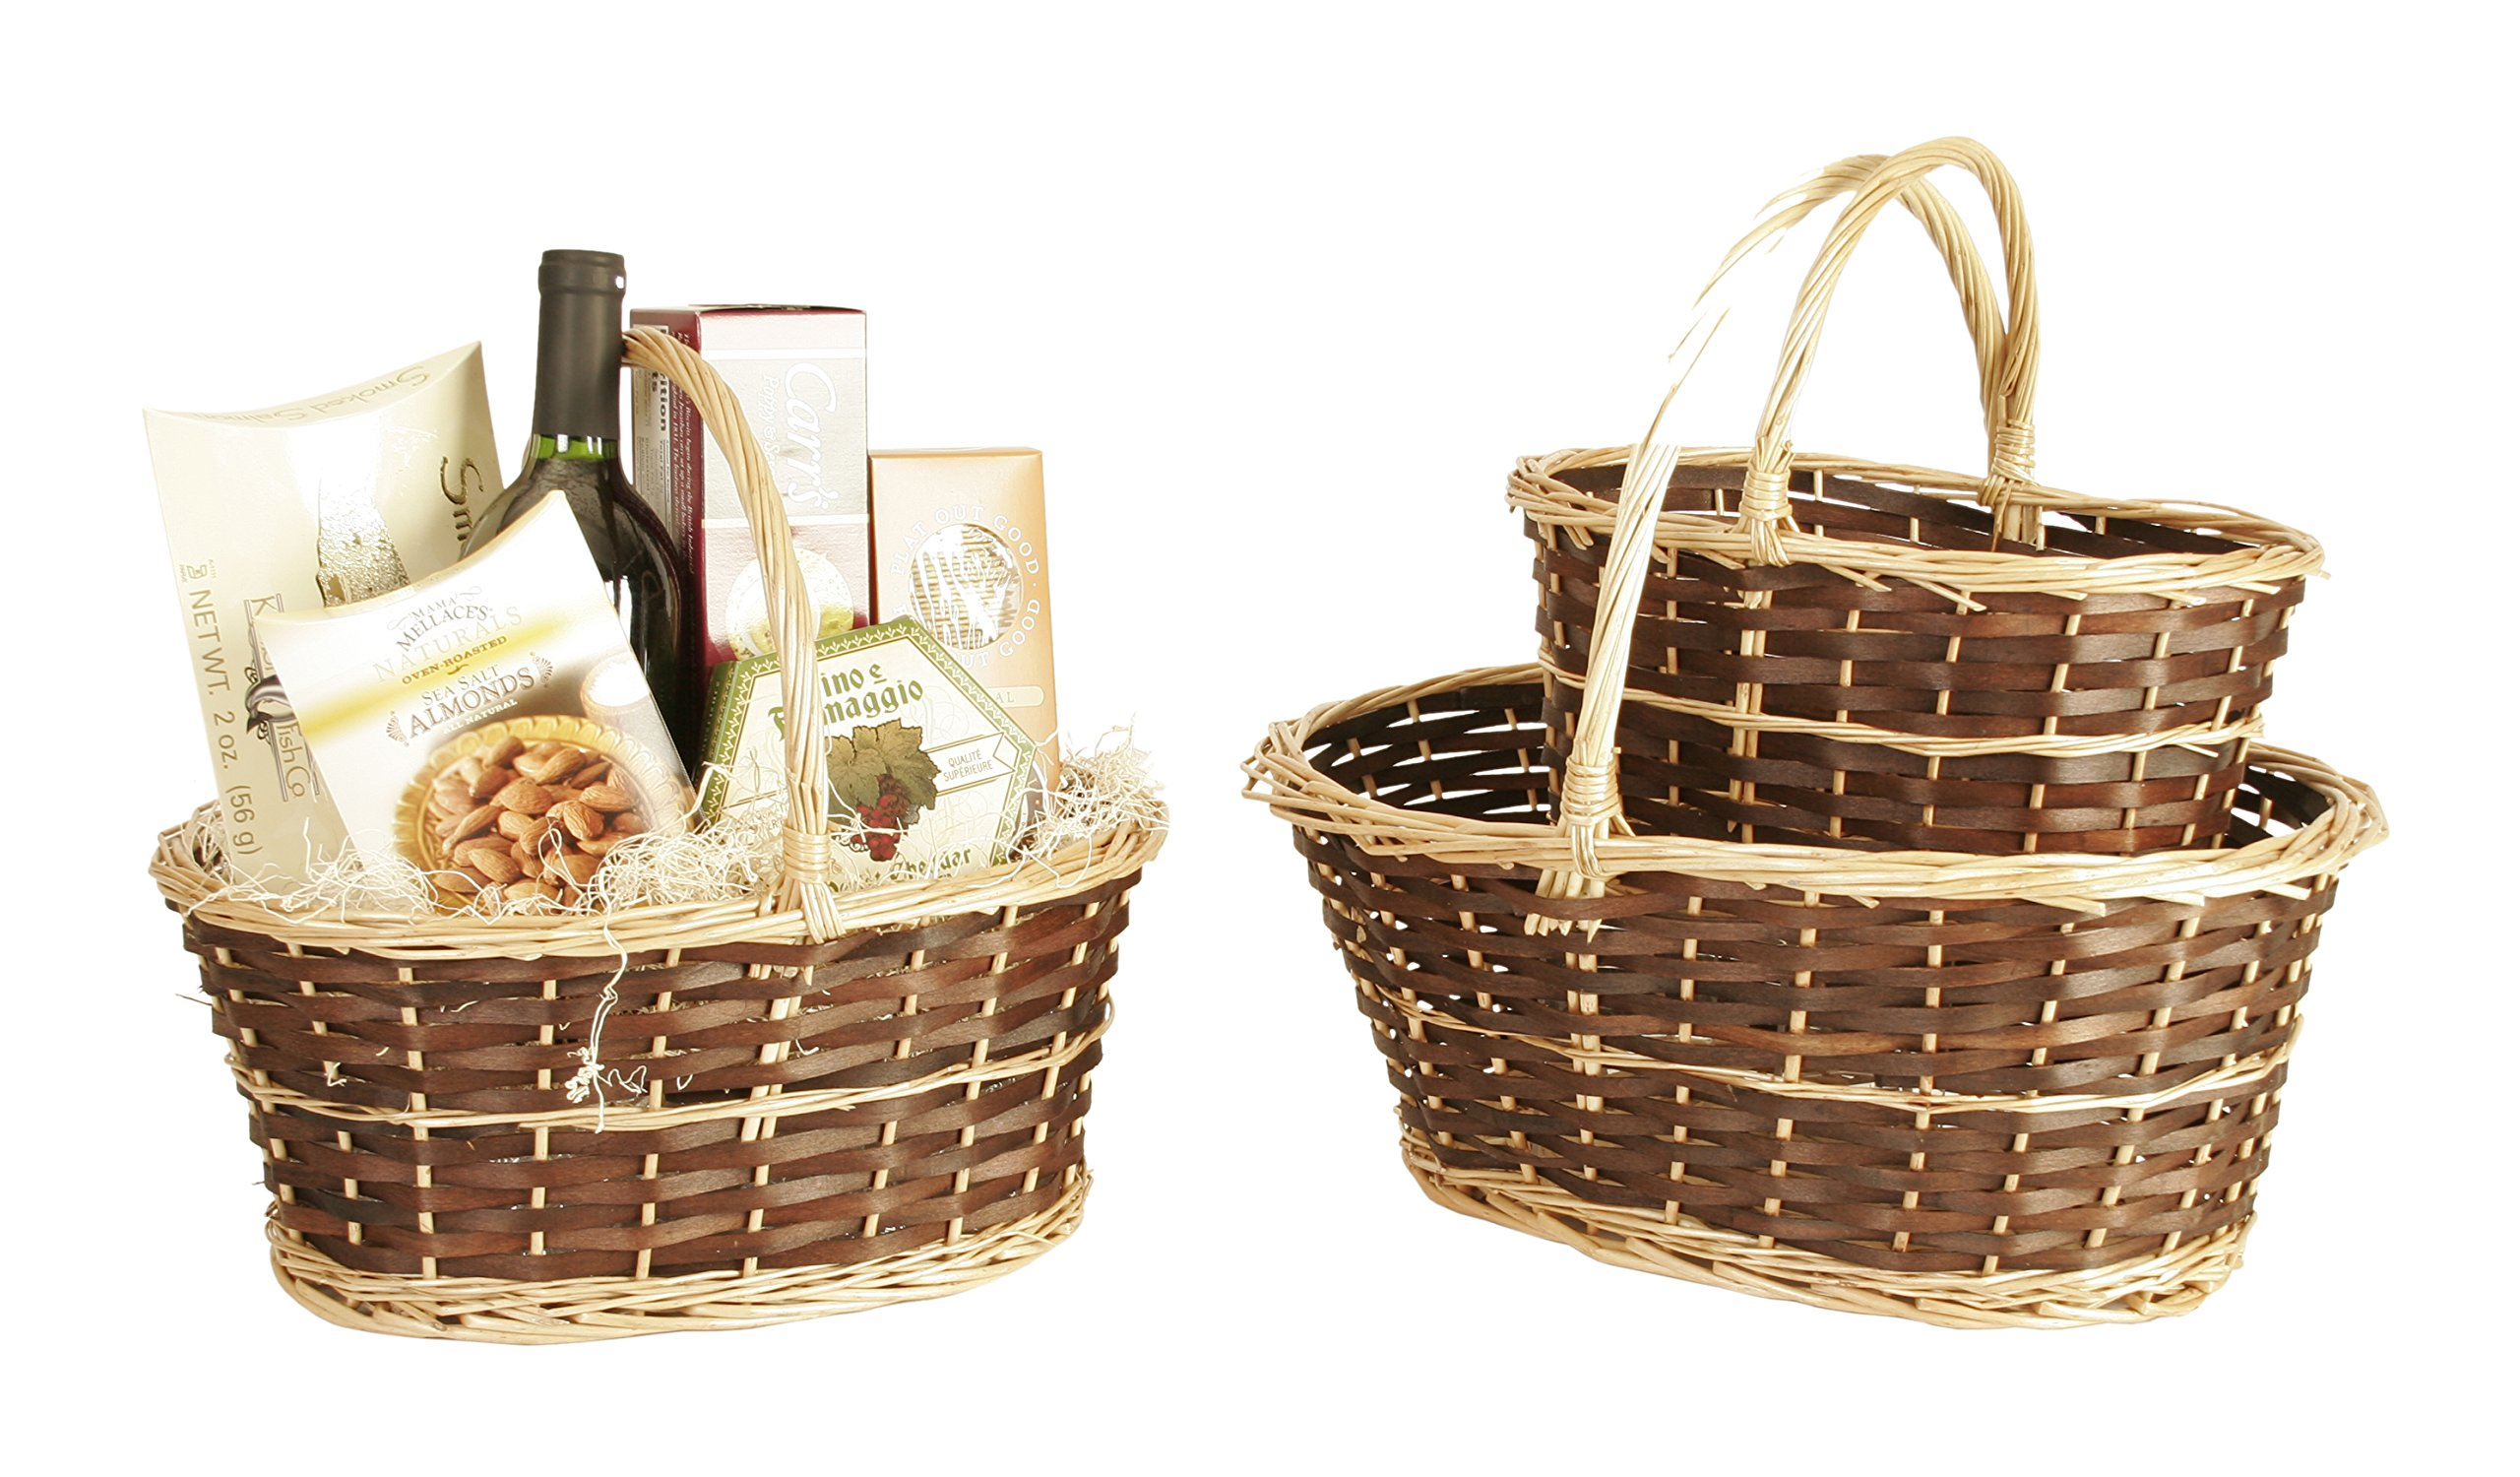 Wald Imports Brown & Beige Willow Decorative Nesting Storage Baskets, Set of 3 - Two-tone willow baskets, dark stained body with natural finish edging & handles Hand woven from natural materials Nested set of 3 baskets - living-room-decor, living-room, baskets-storage - 81NoADE2e3L -